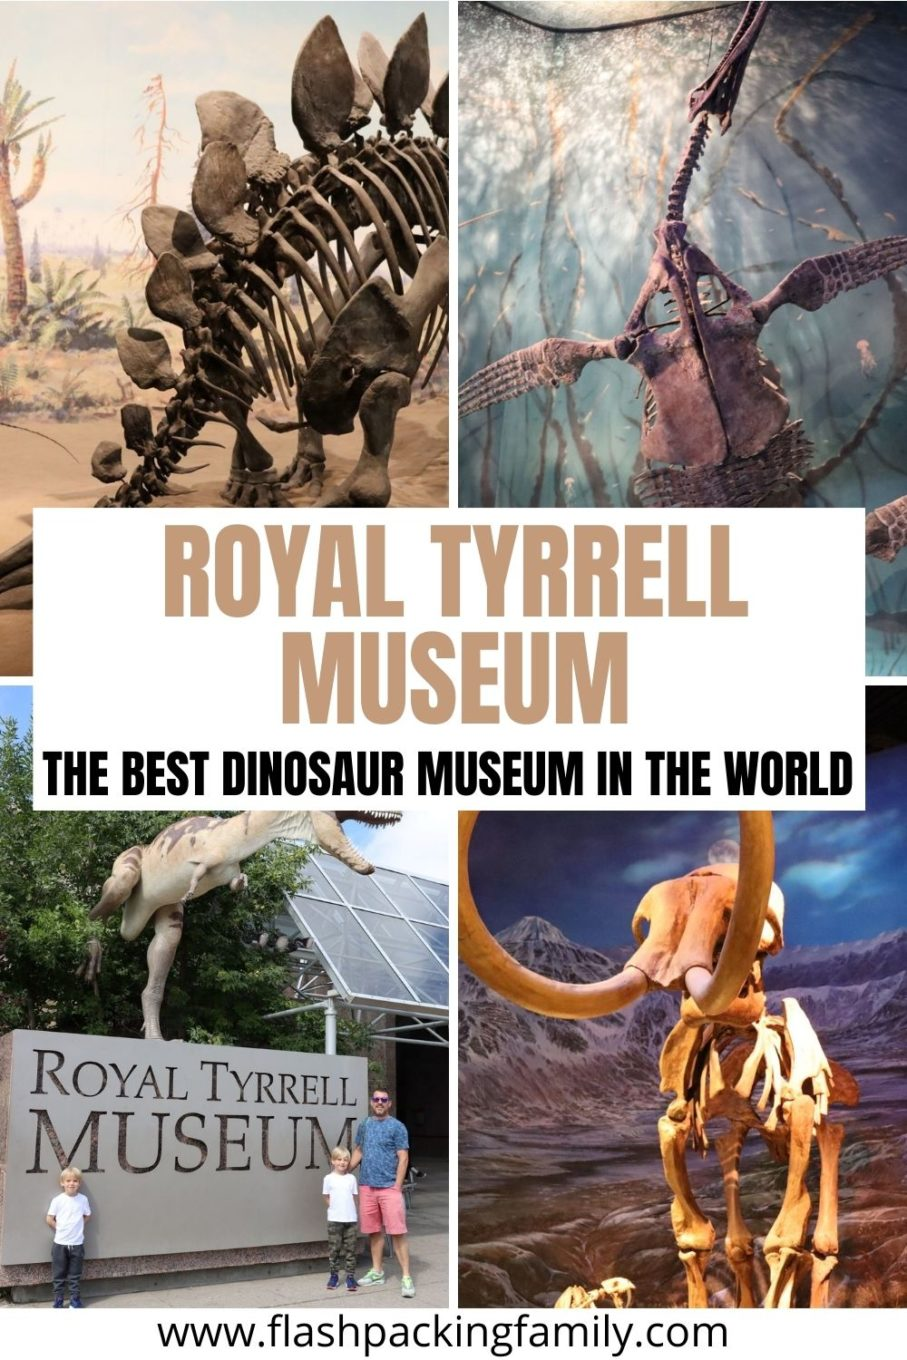 Royal Tyrrell Museum - The Best Dinosaur Museum in the World